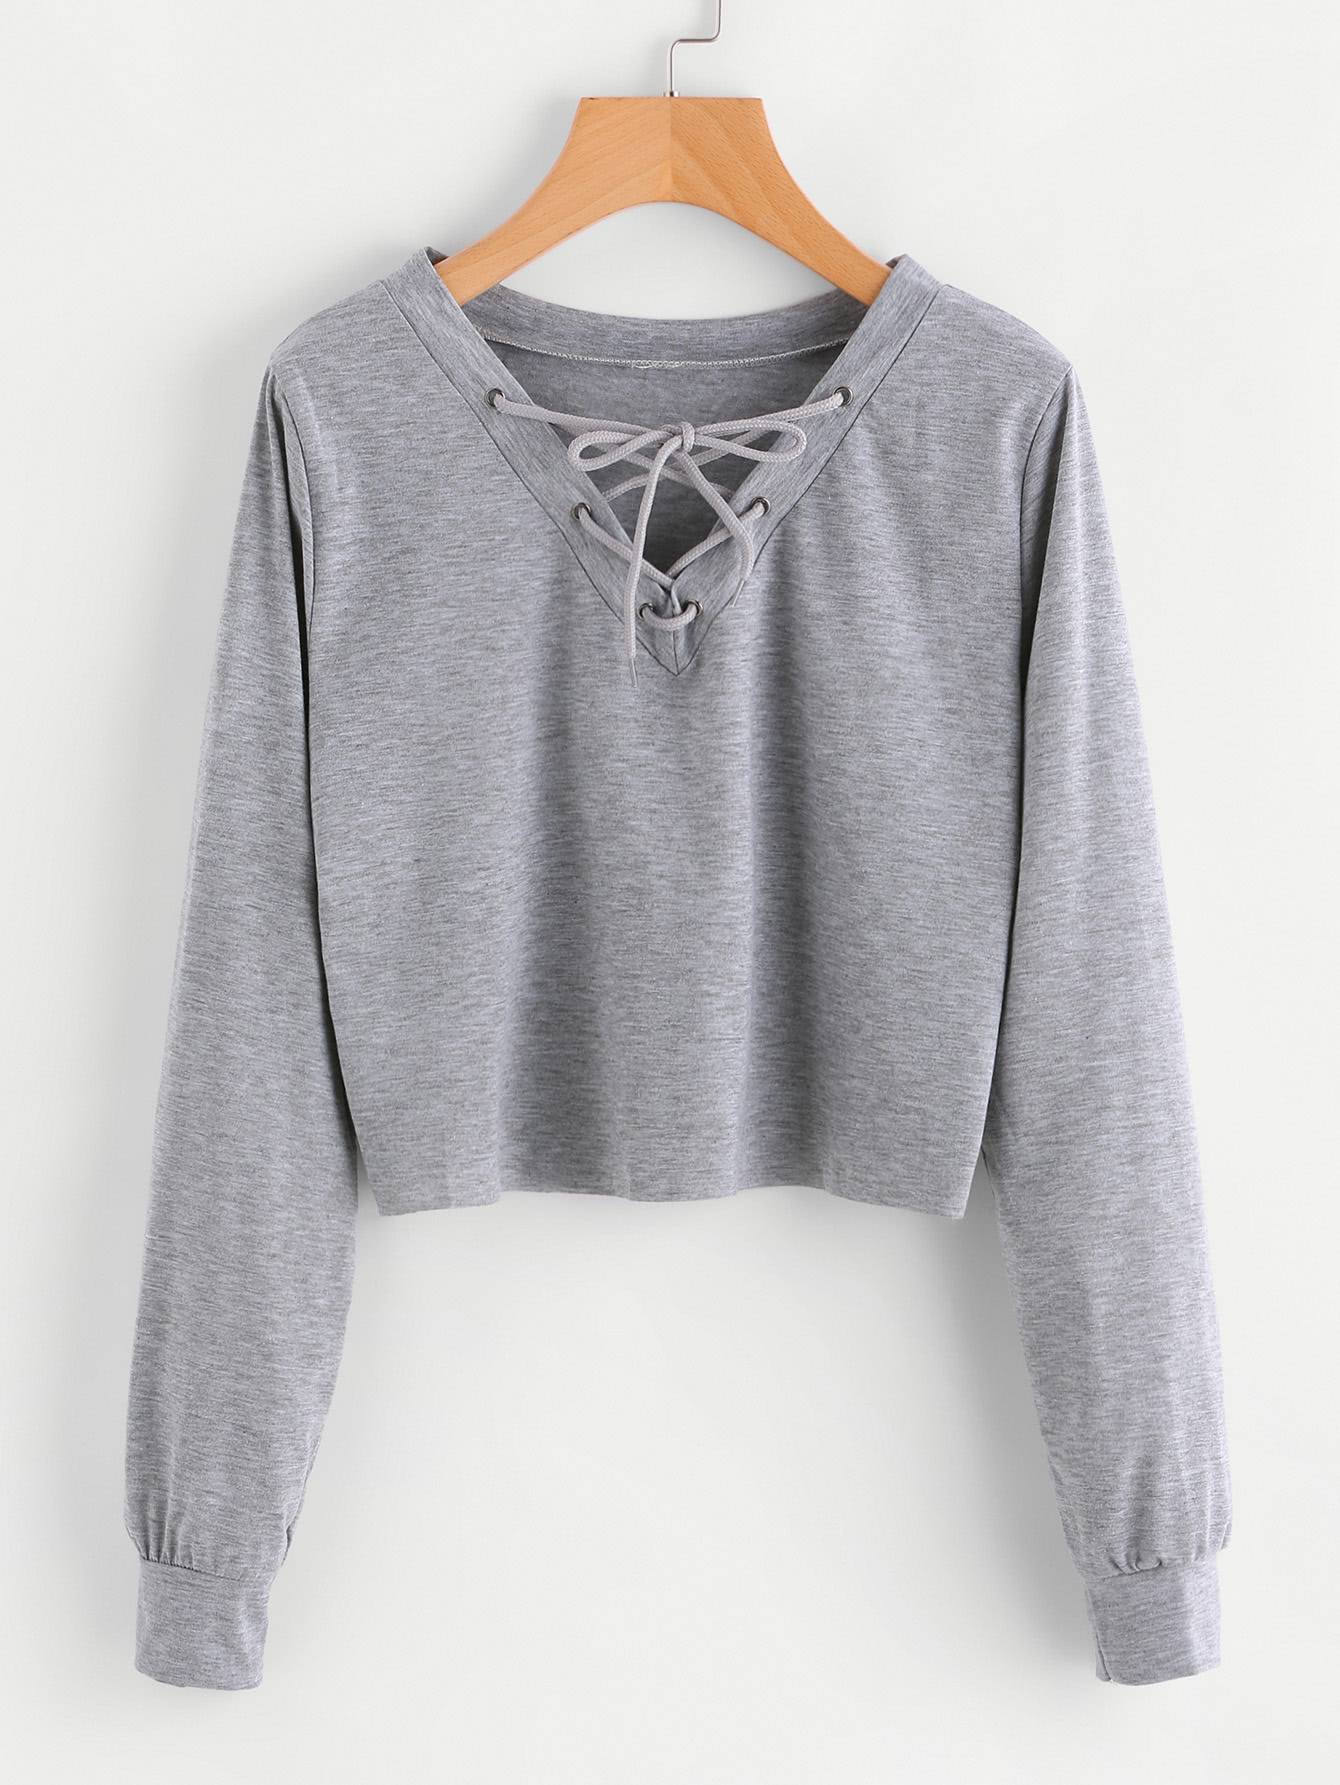 Eyelet Lace Up Sweatshirt